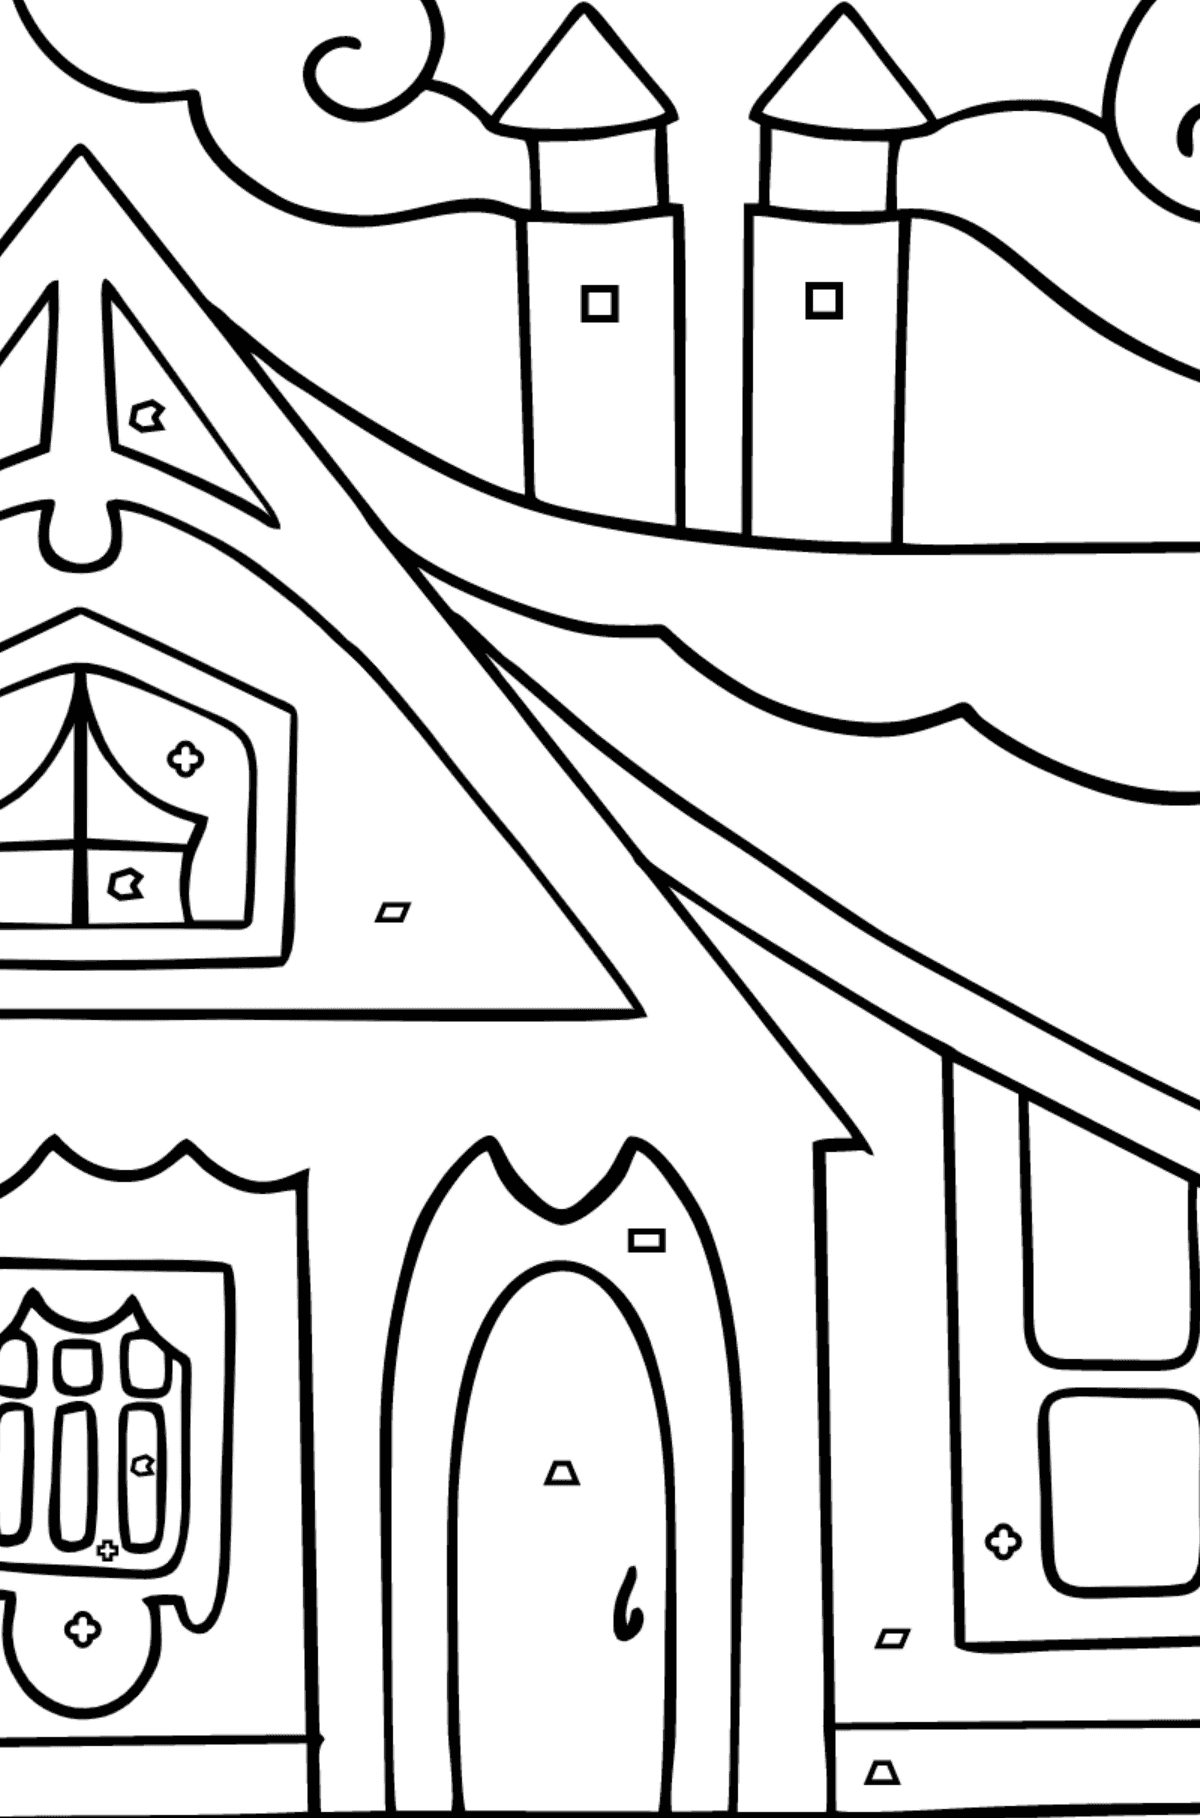 Coloring Page - A Tiny House - Coloring by Geometric Shapes for Children